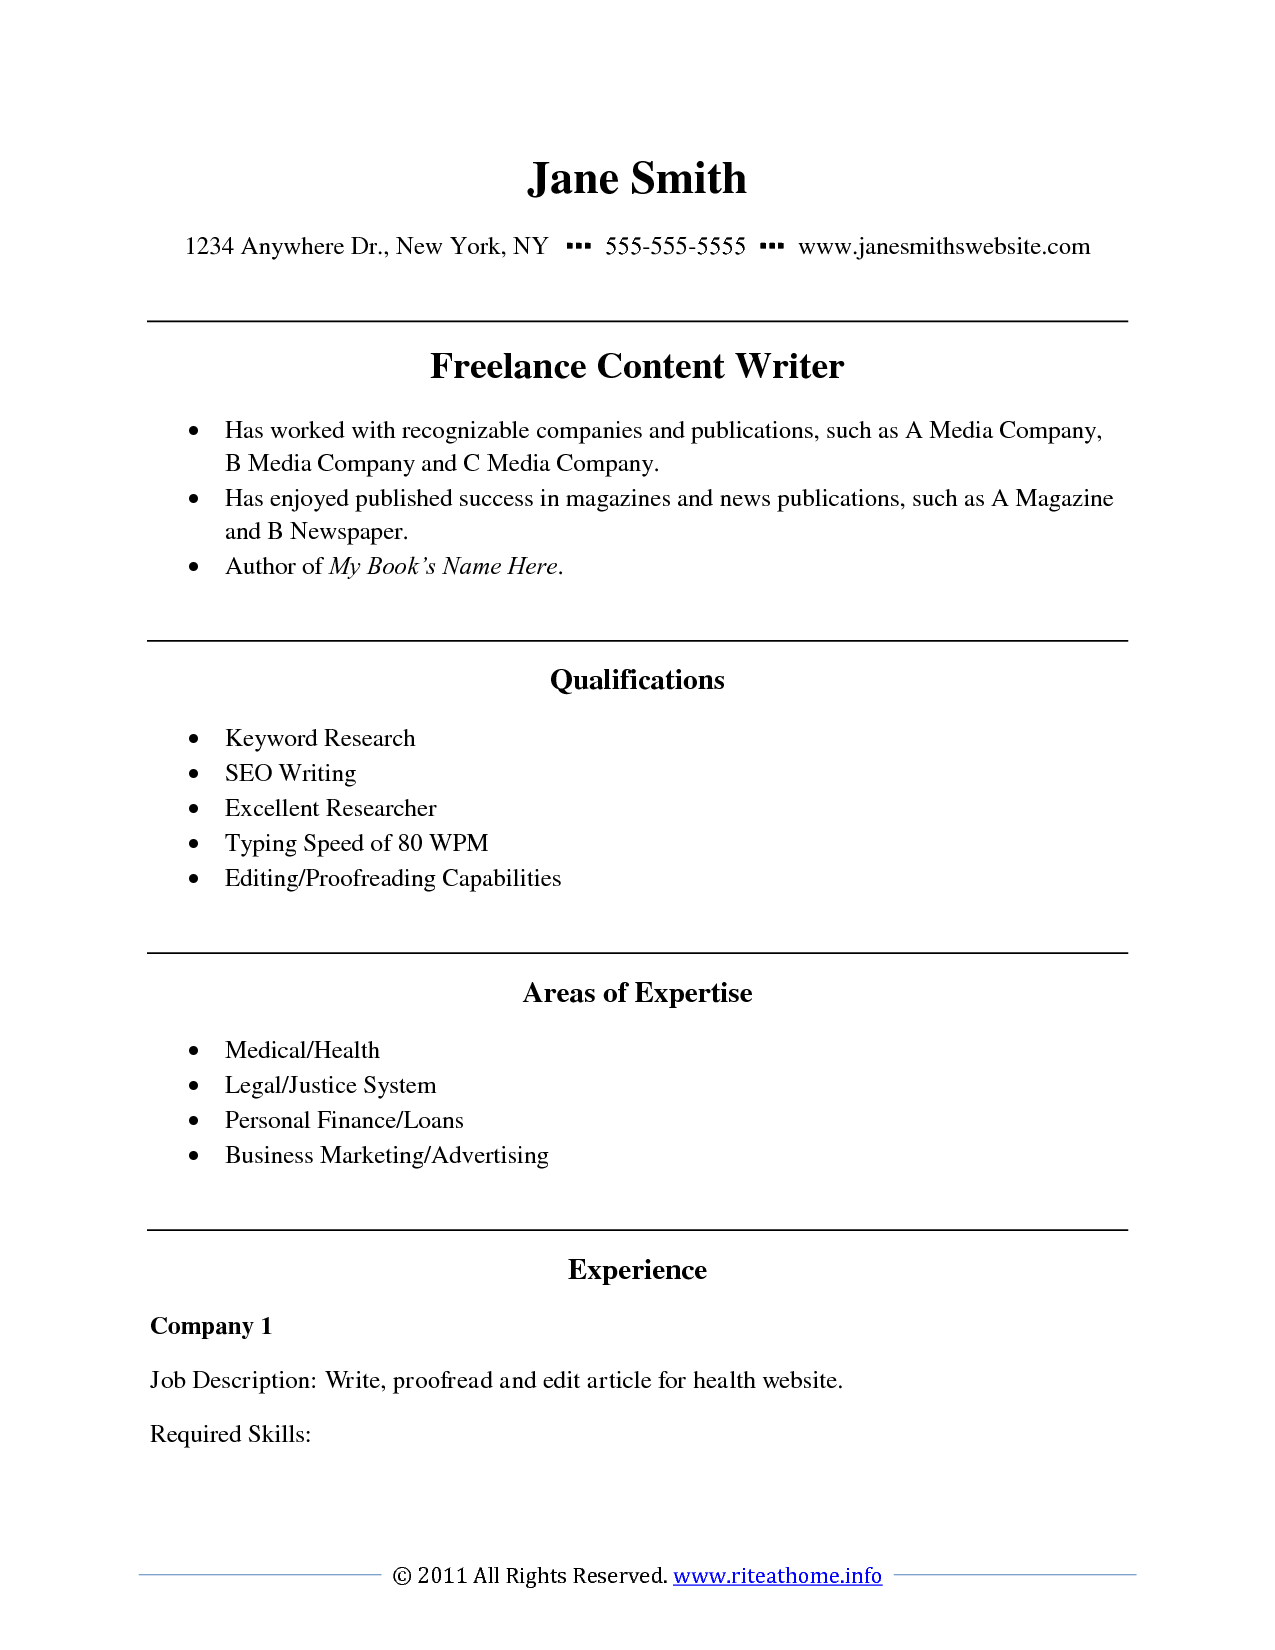 Resume Writing Examples Sample Resumes HDWriting A Resume Cover Letter  Examples  Resume Writing Companies